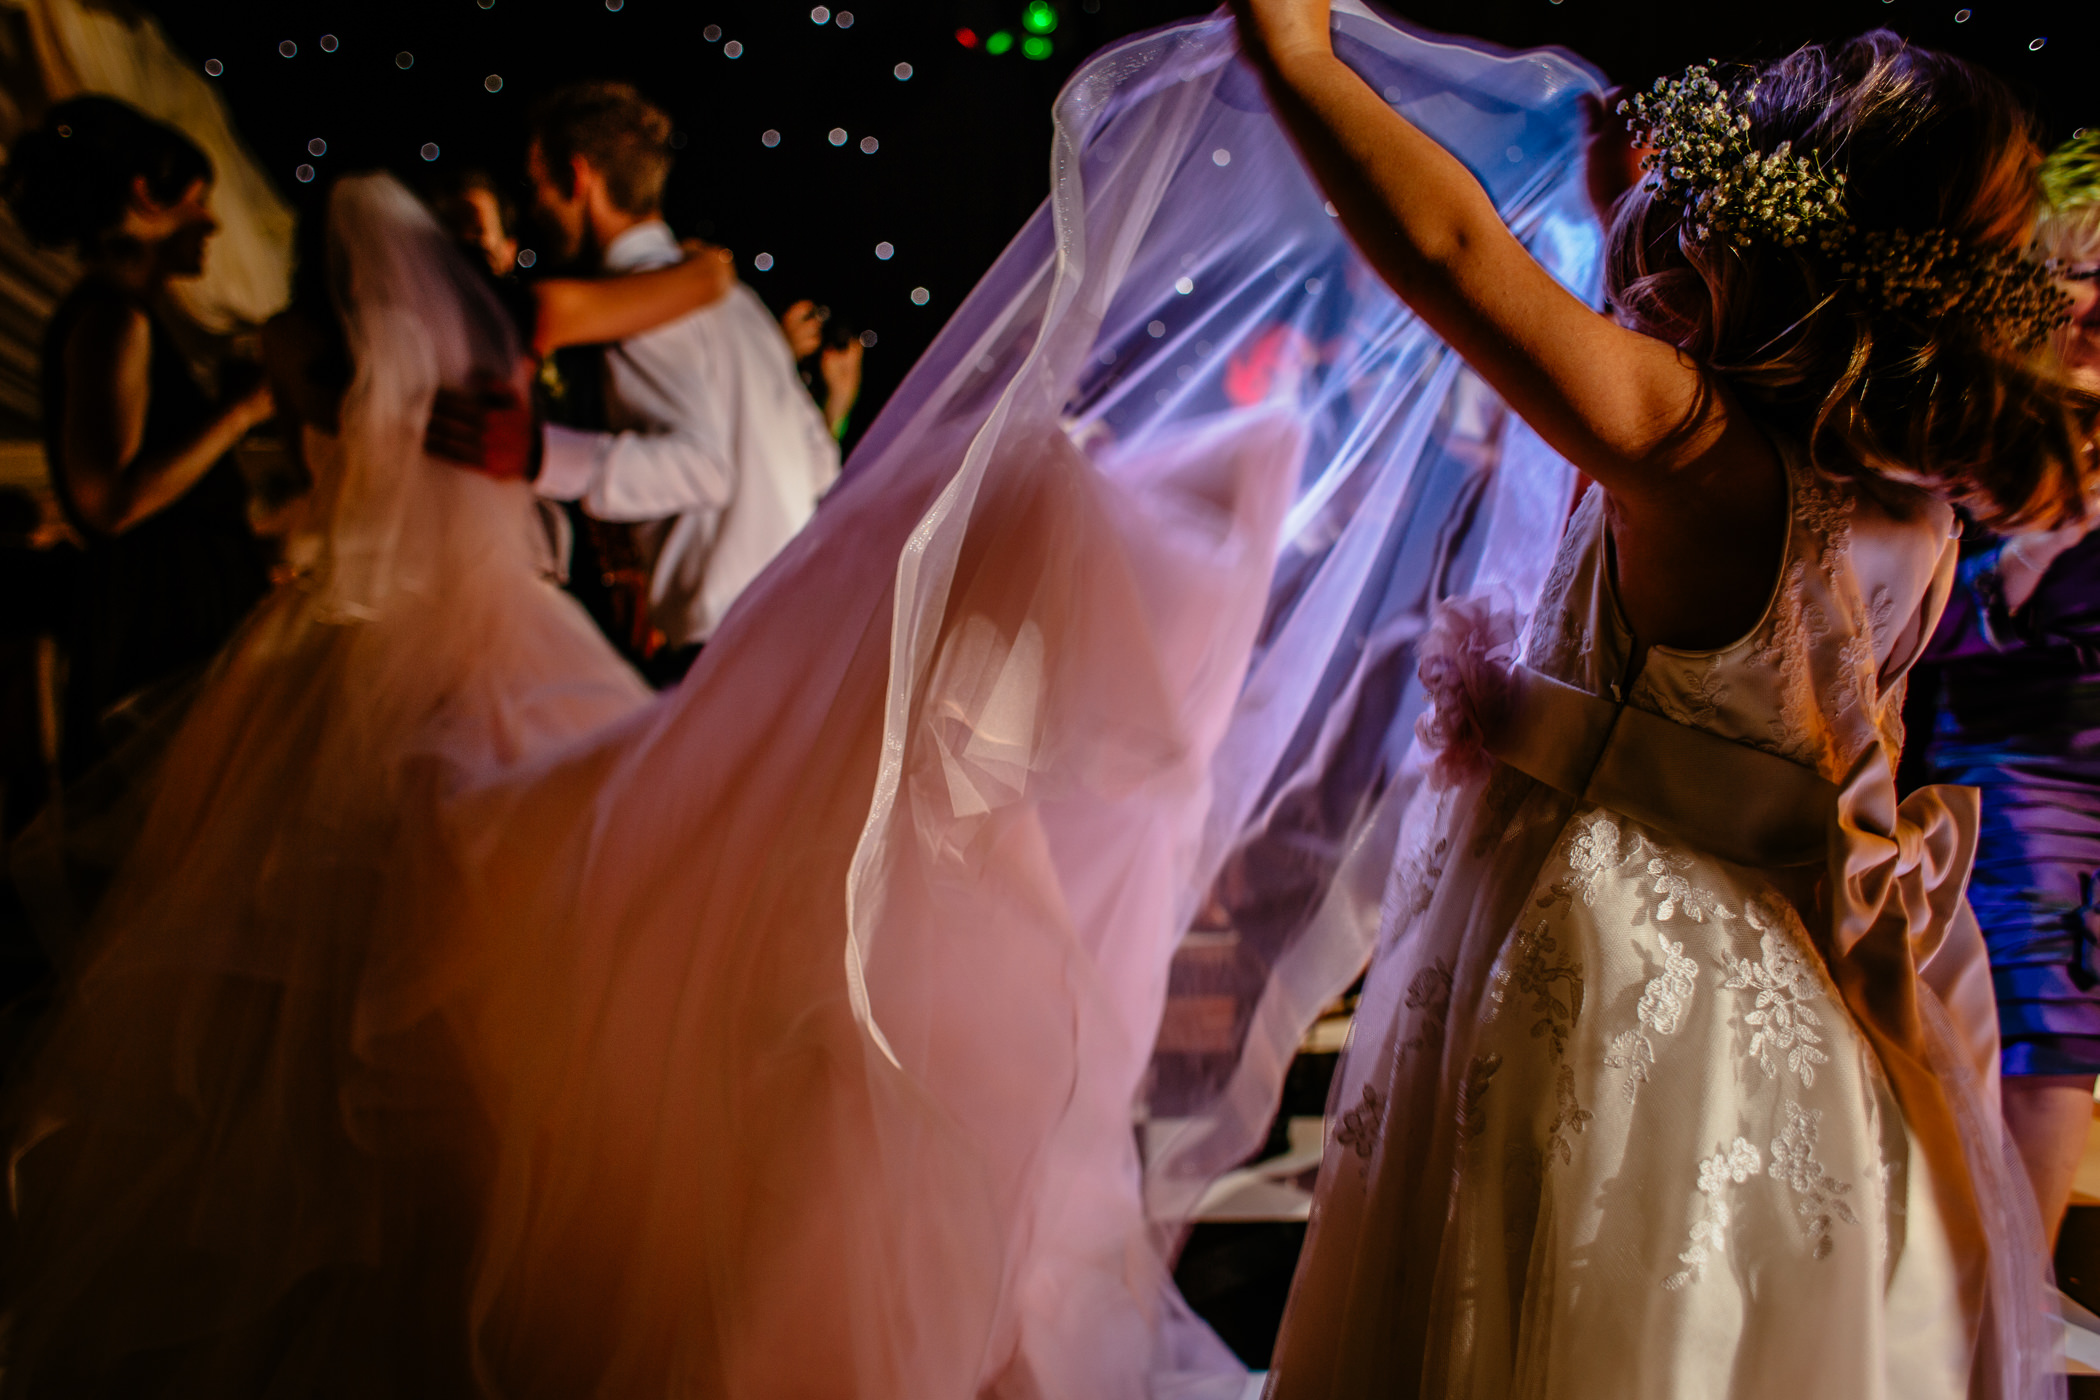 sansom-photography-becky-david-cheshire-wedding-65